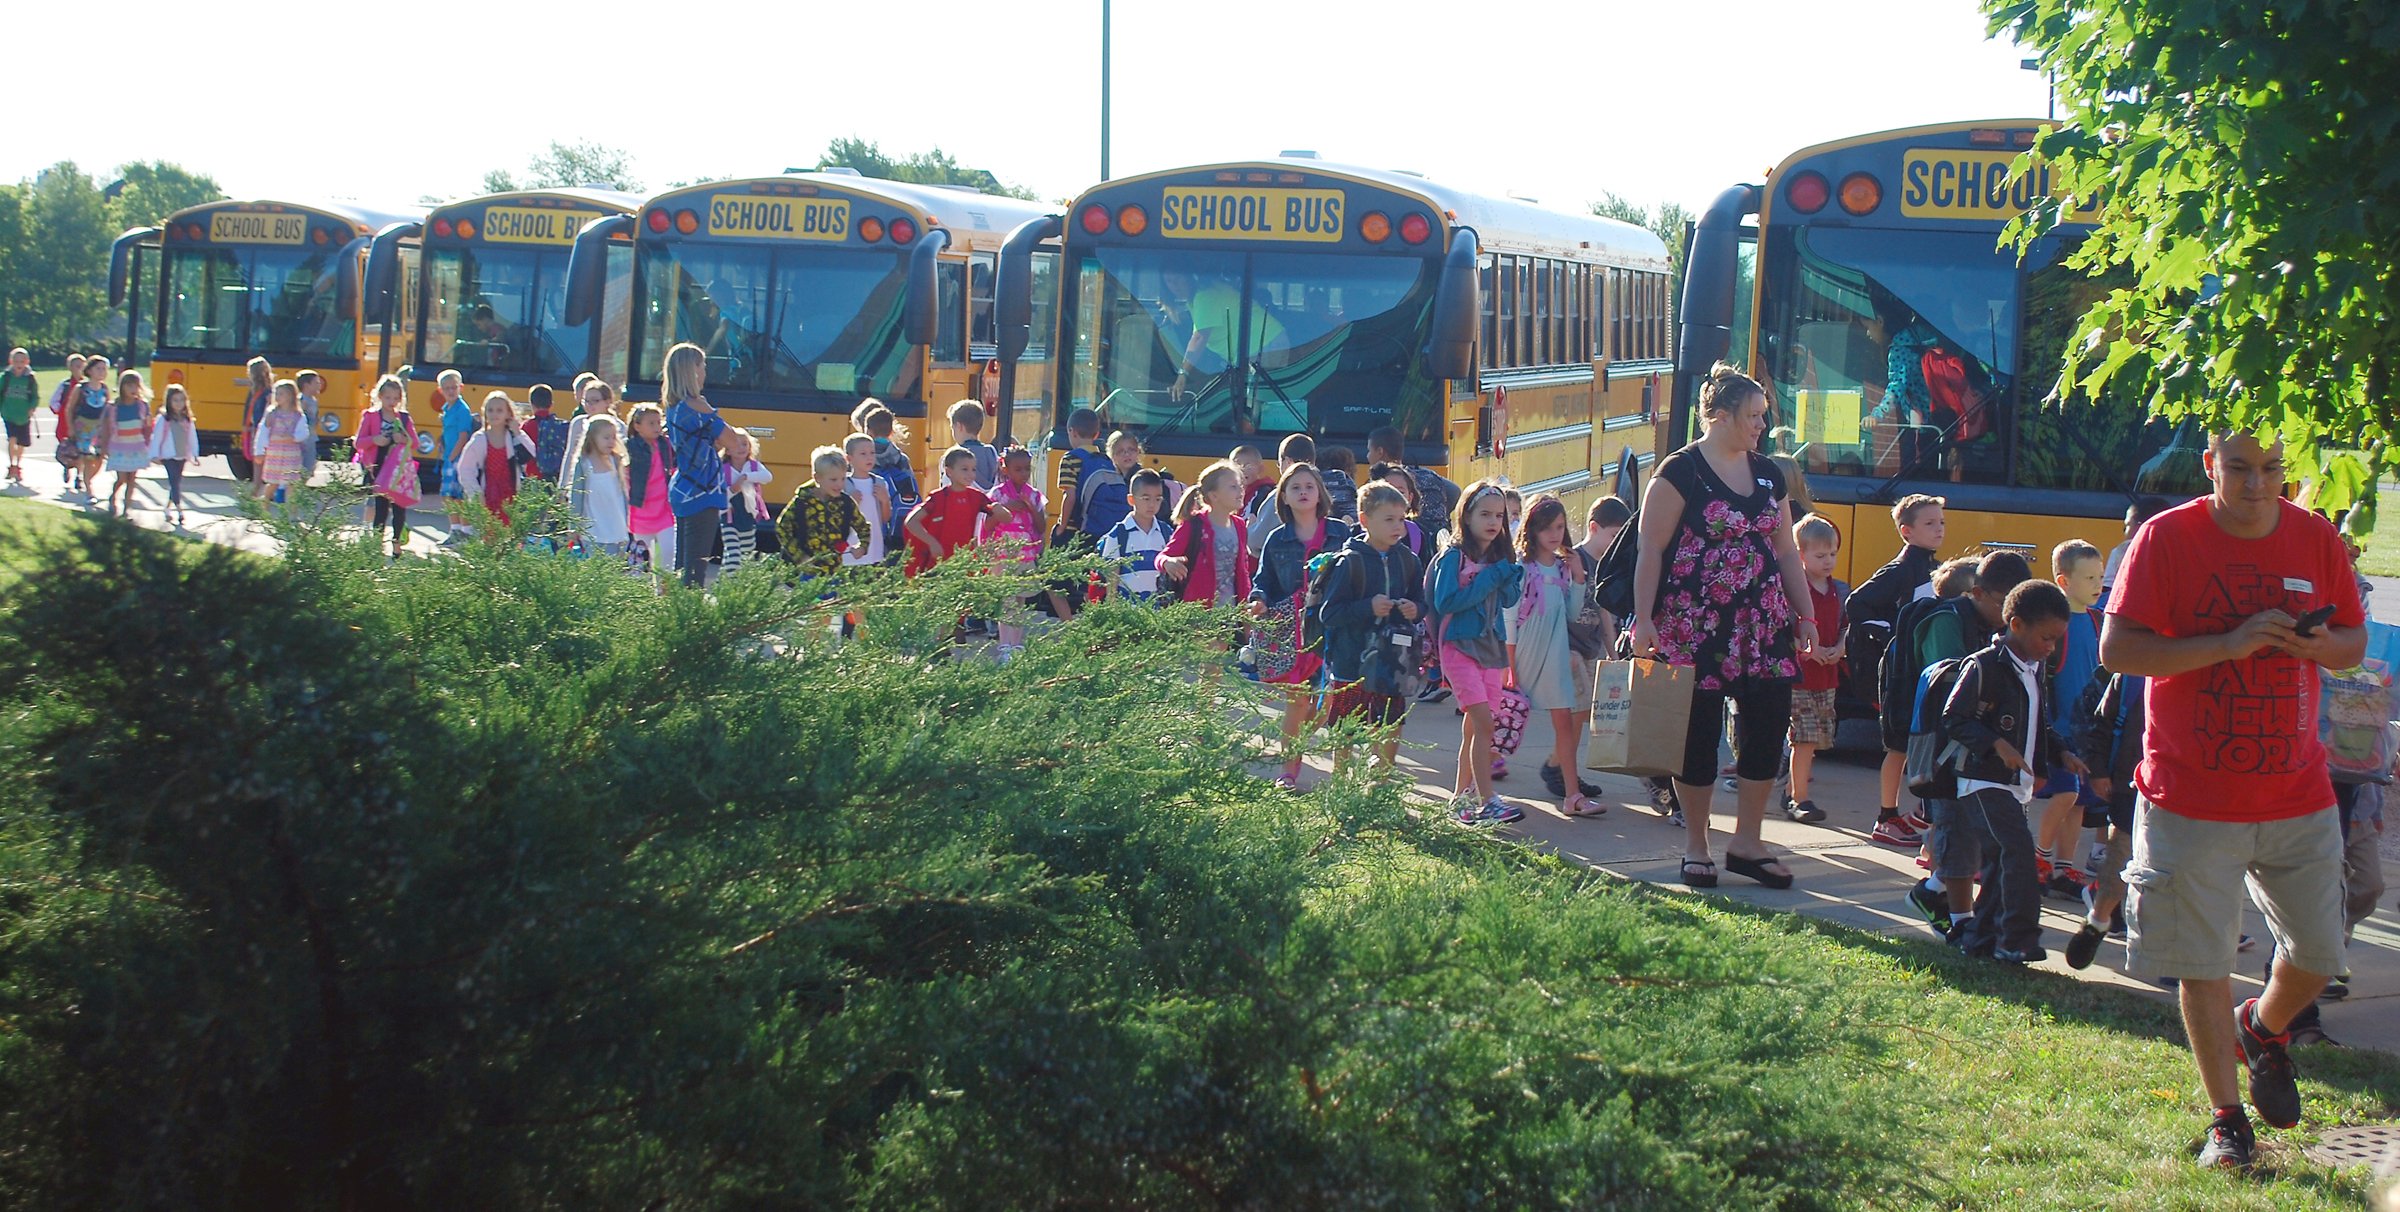 Westfield Washington Schools to pilot seatbelts on buses